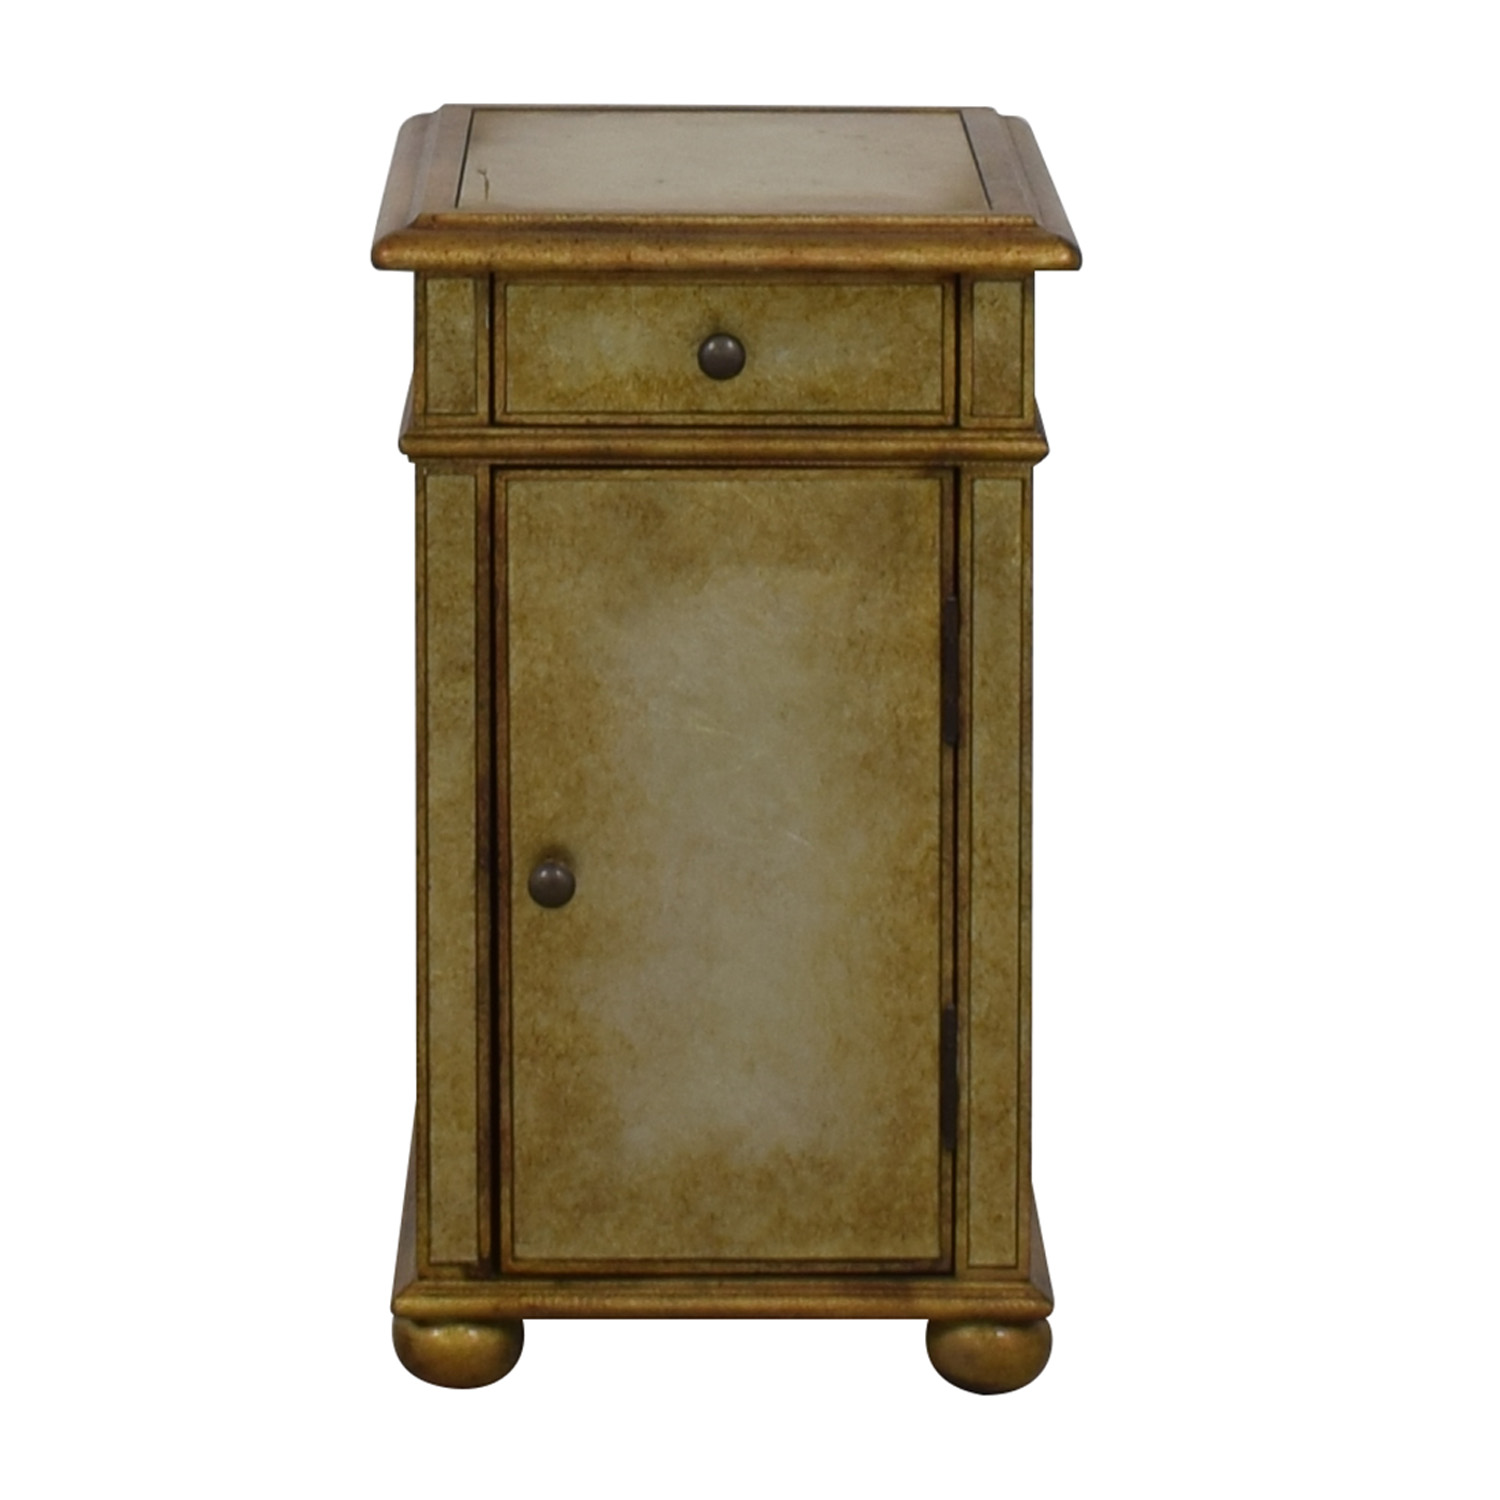 Hooker Furniture Hooker Furniture Gold Finished End Table price